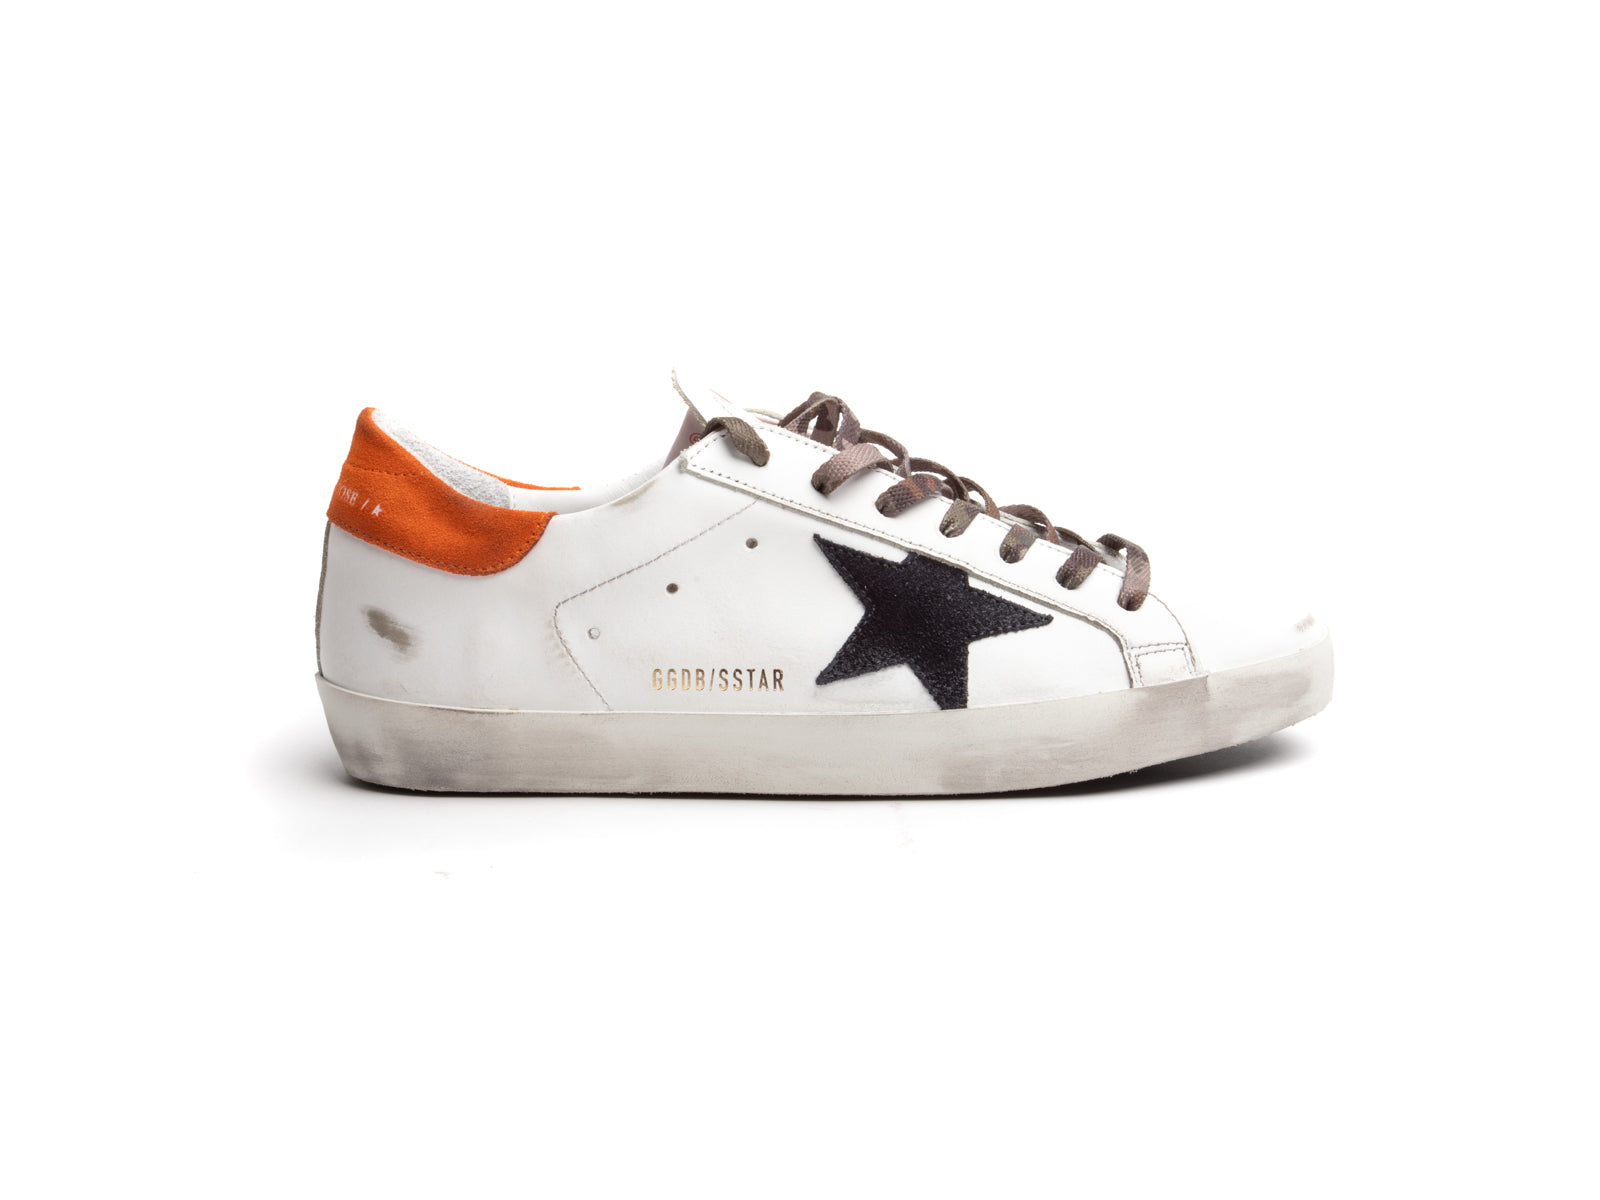 Superstar Sneaker in White with Orange Heel and Navy Suede Star